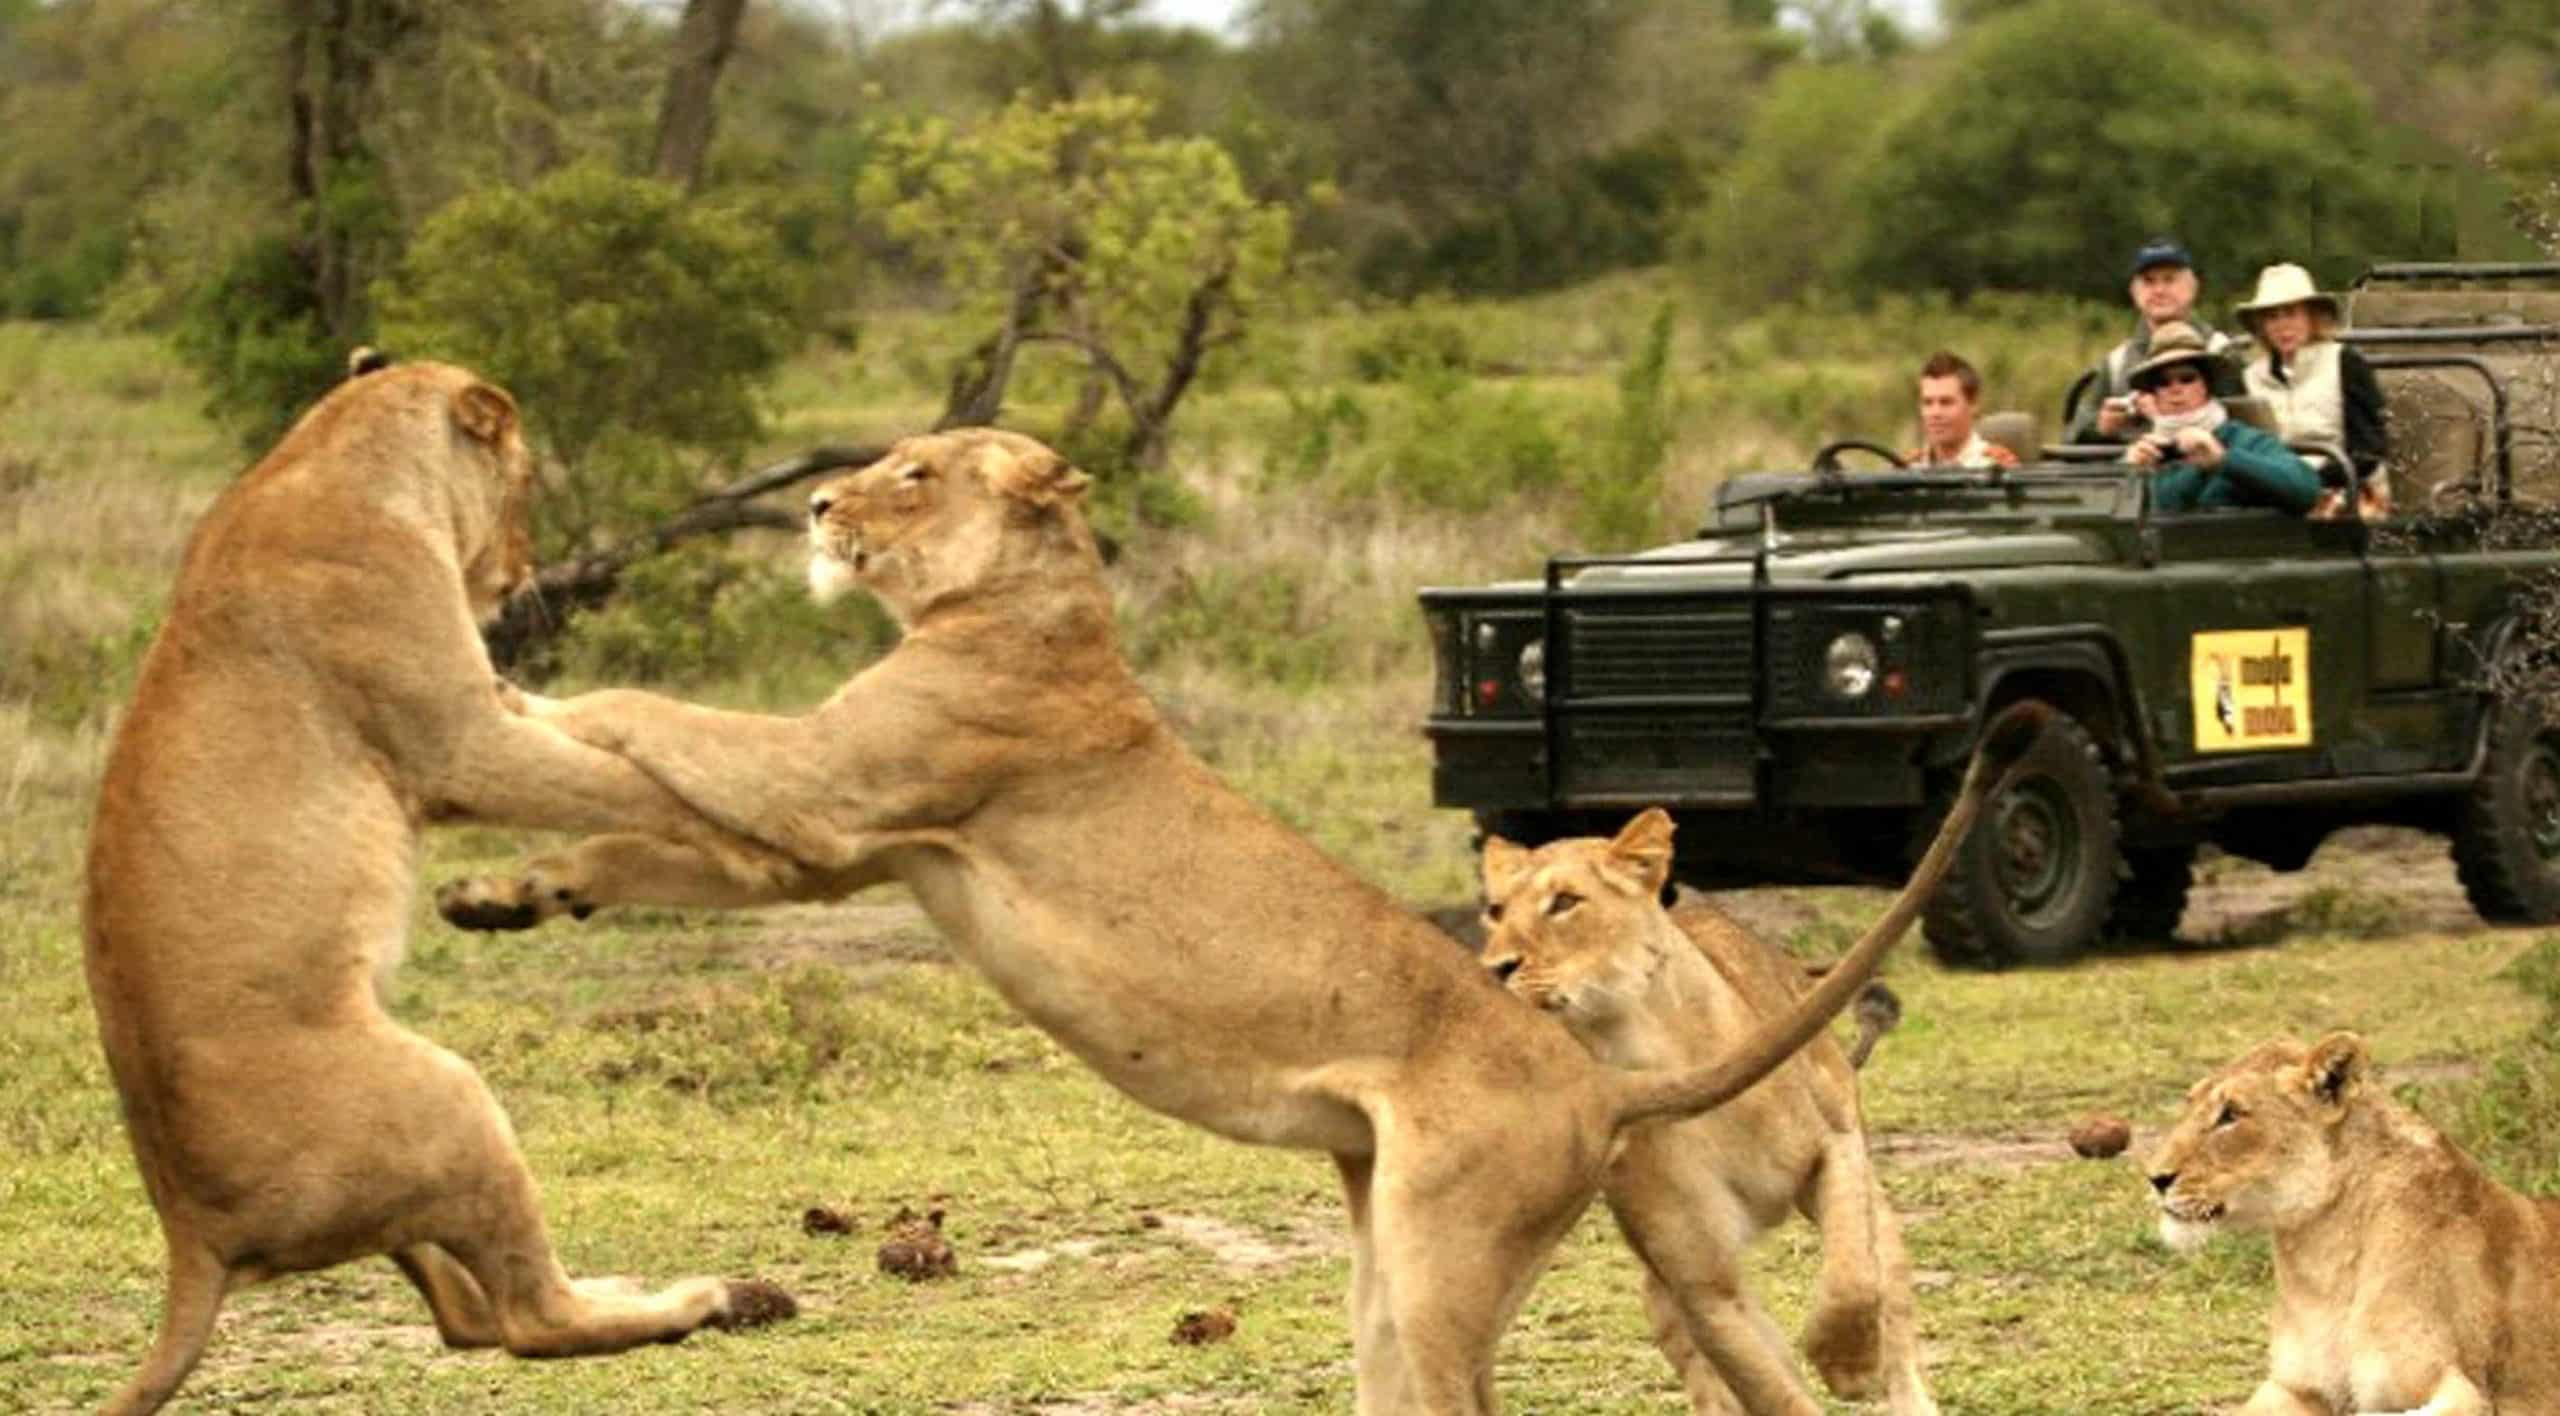 Lions sparring on drive at MalaMala